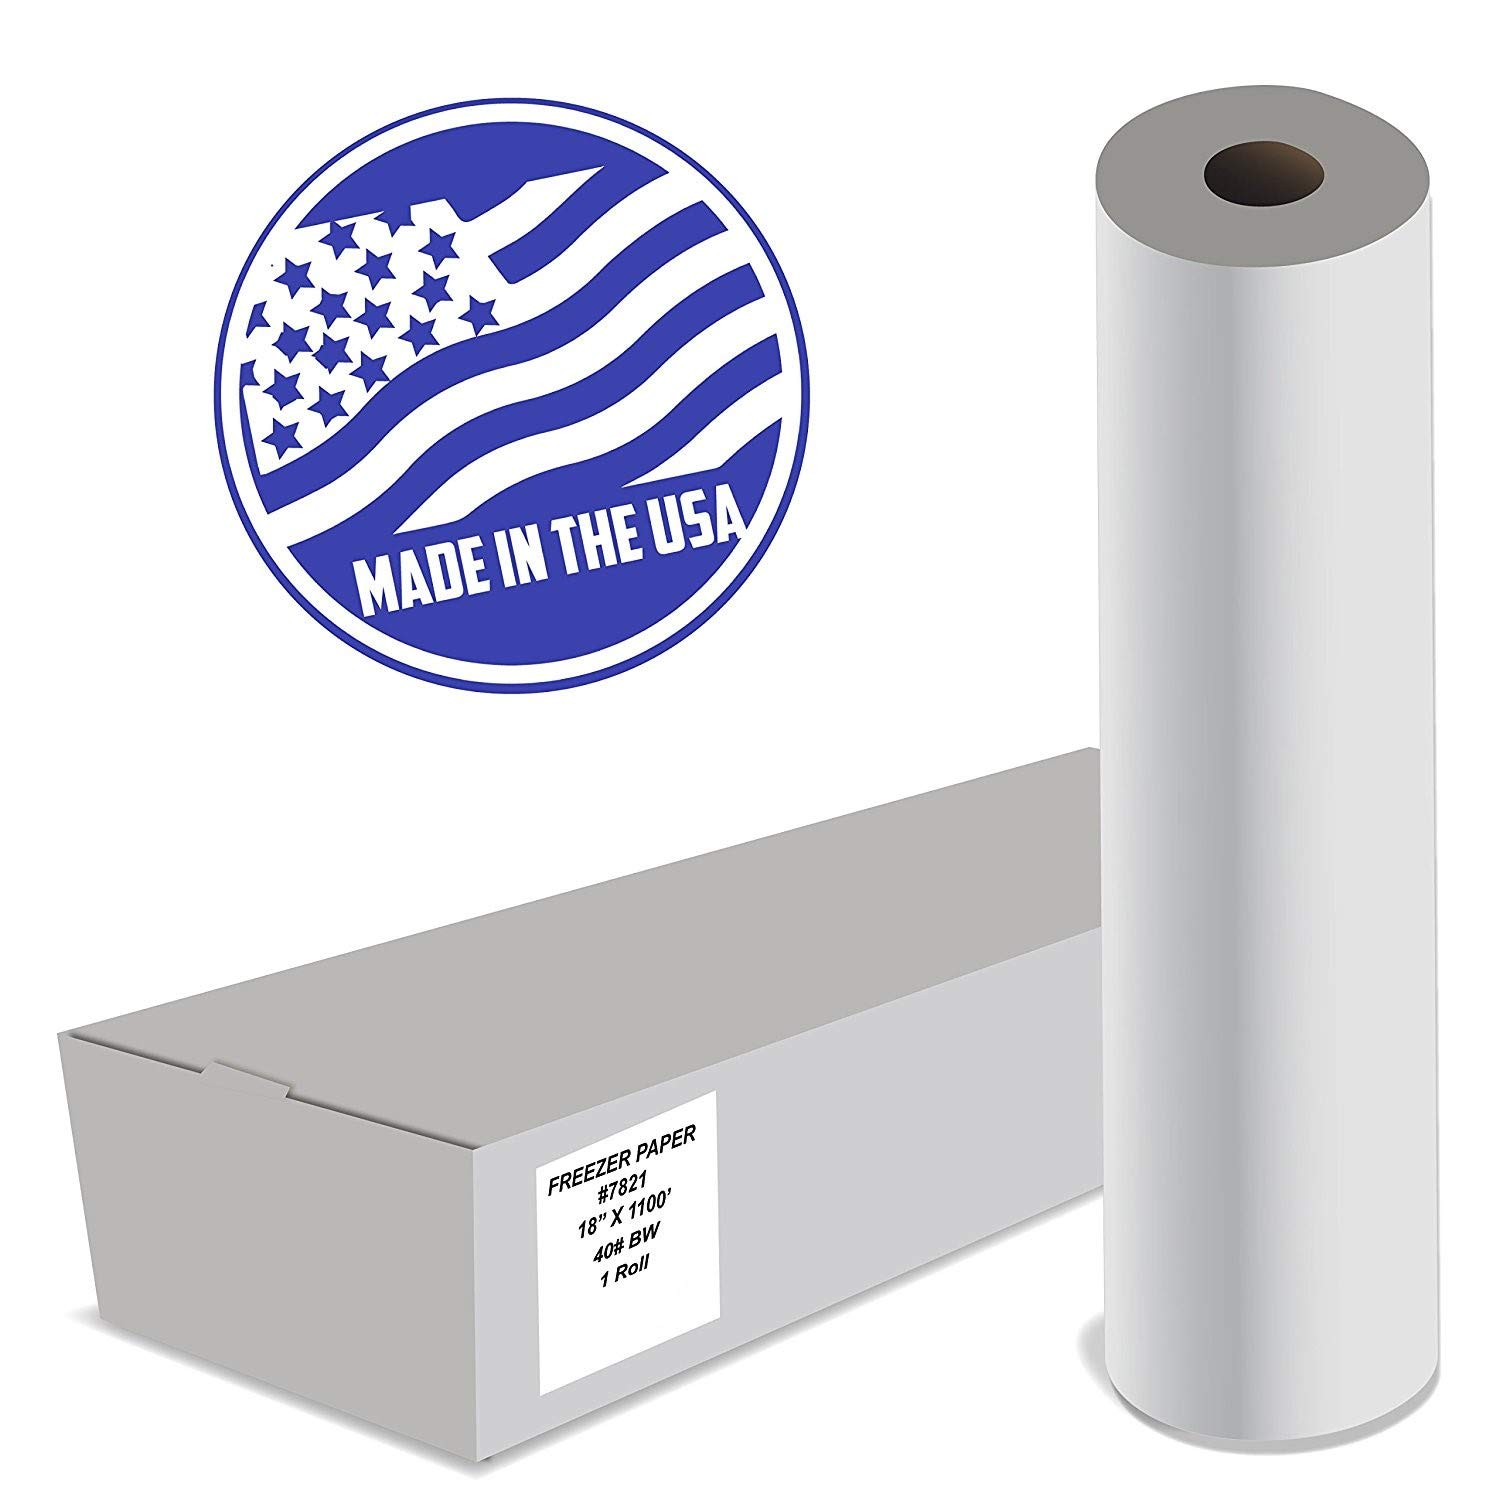 Impreso White Butcher Paper, 24'' x 1000' Roll, FDA Approved, 40# Kraft - All Natural FDA Approved Food Grade BBQ Meat Smoking Paper - 1 Roll - Made In The USA